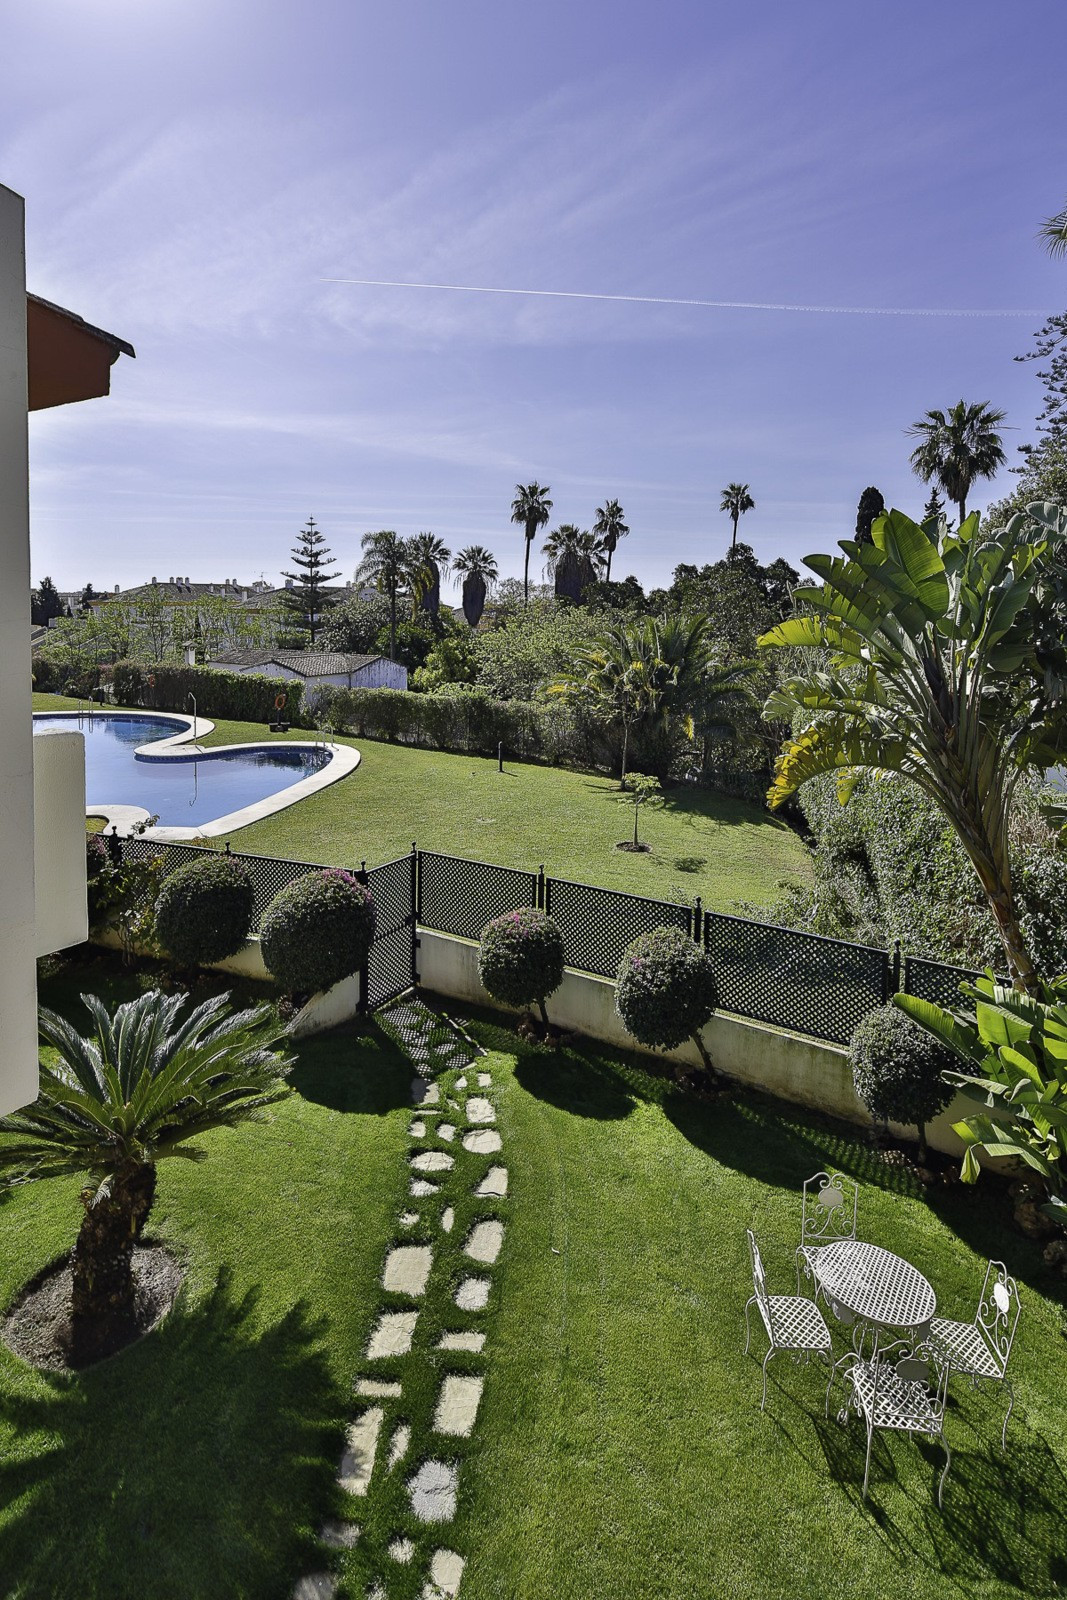 4 Bedroom Semi Detached Townhouse For Sale Marbella